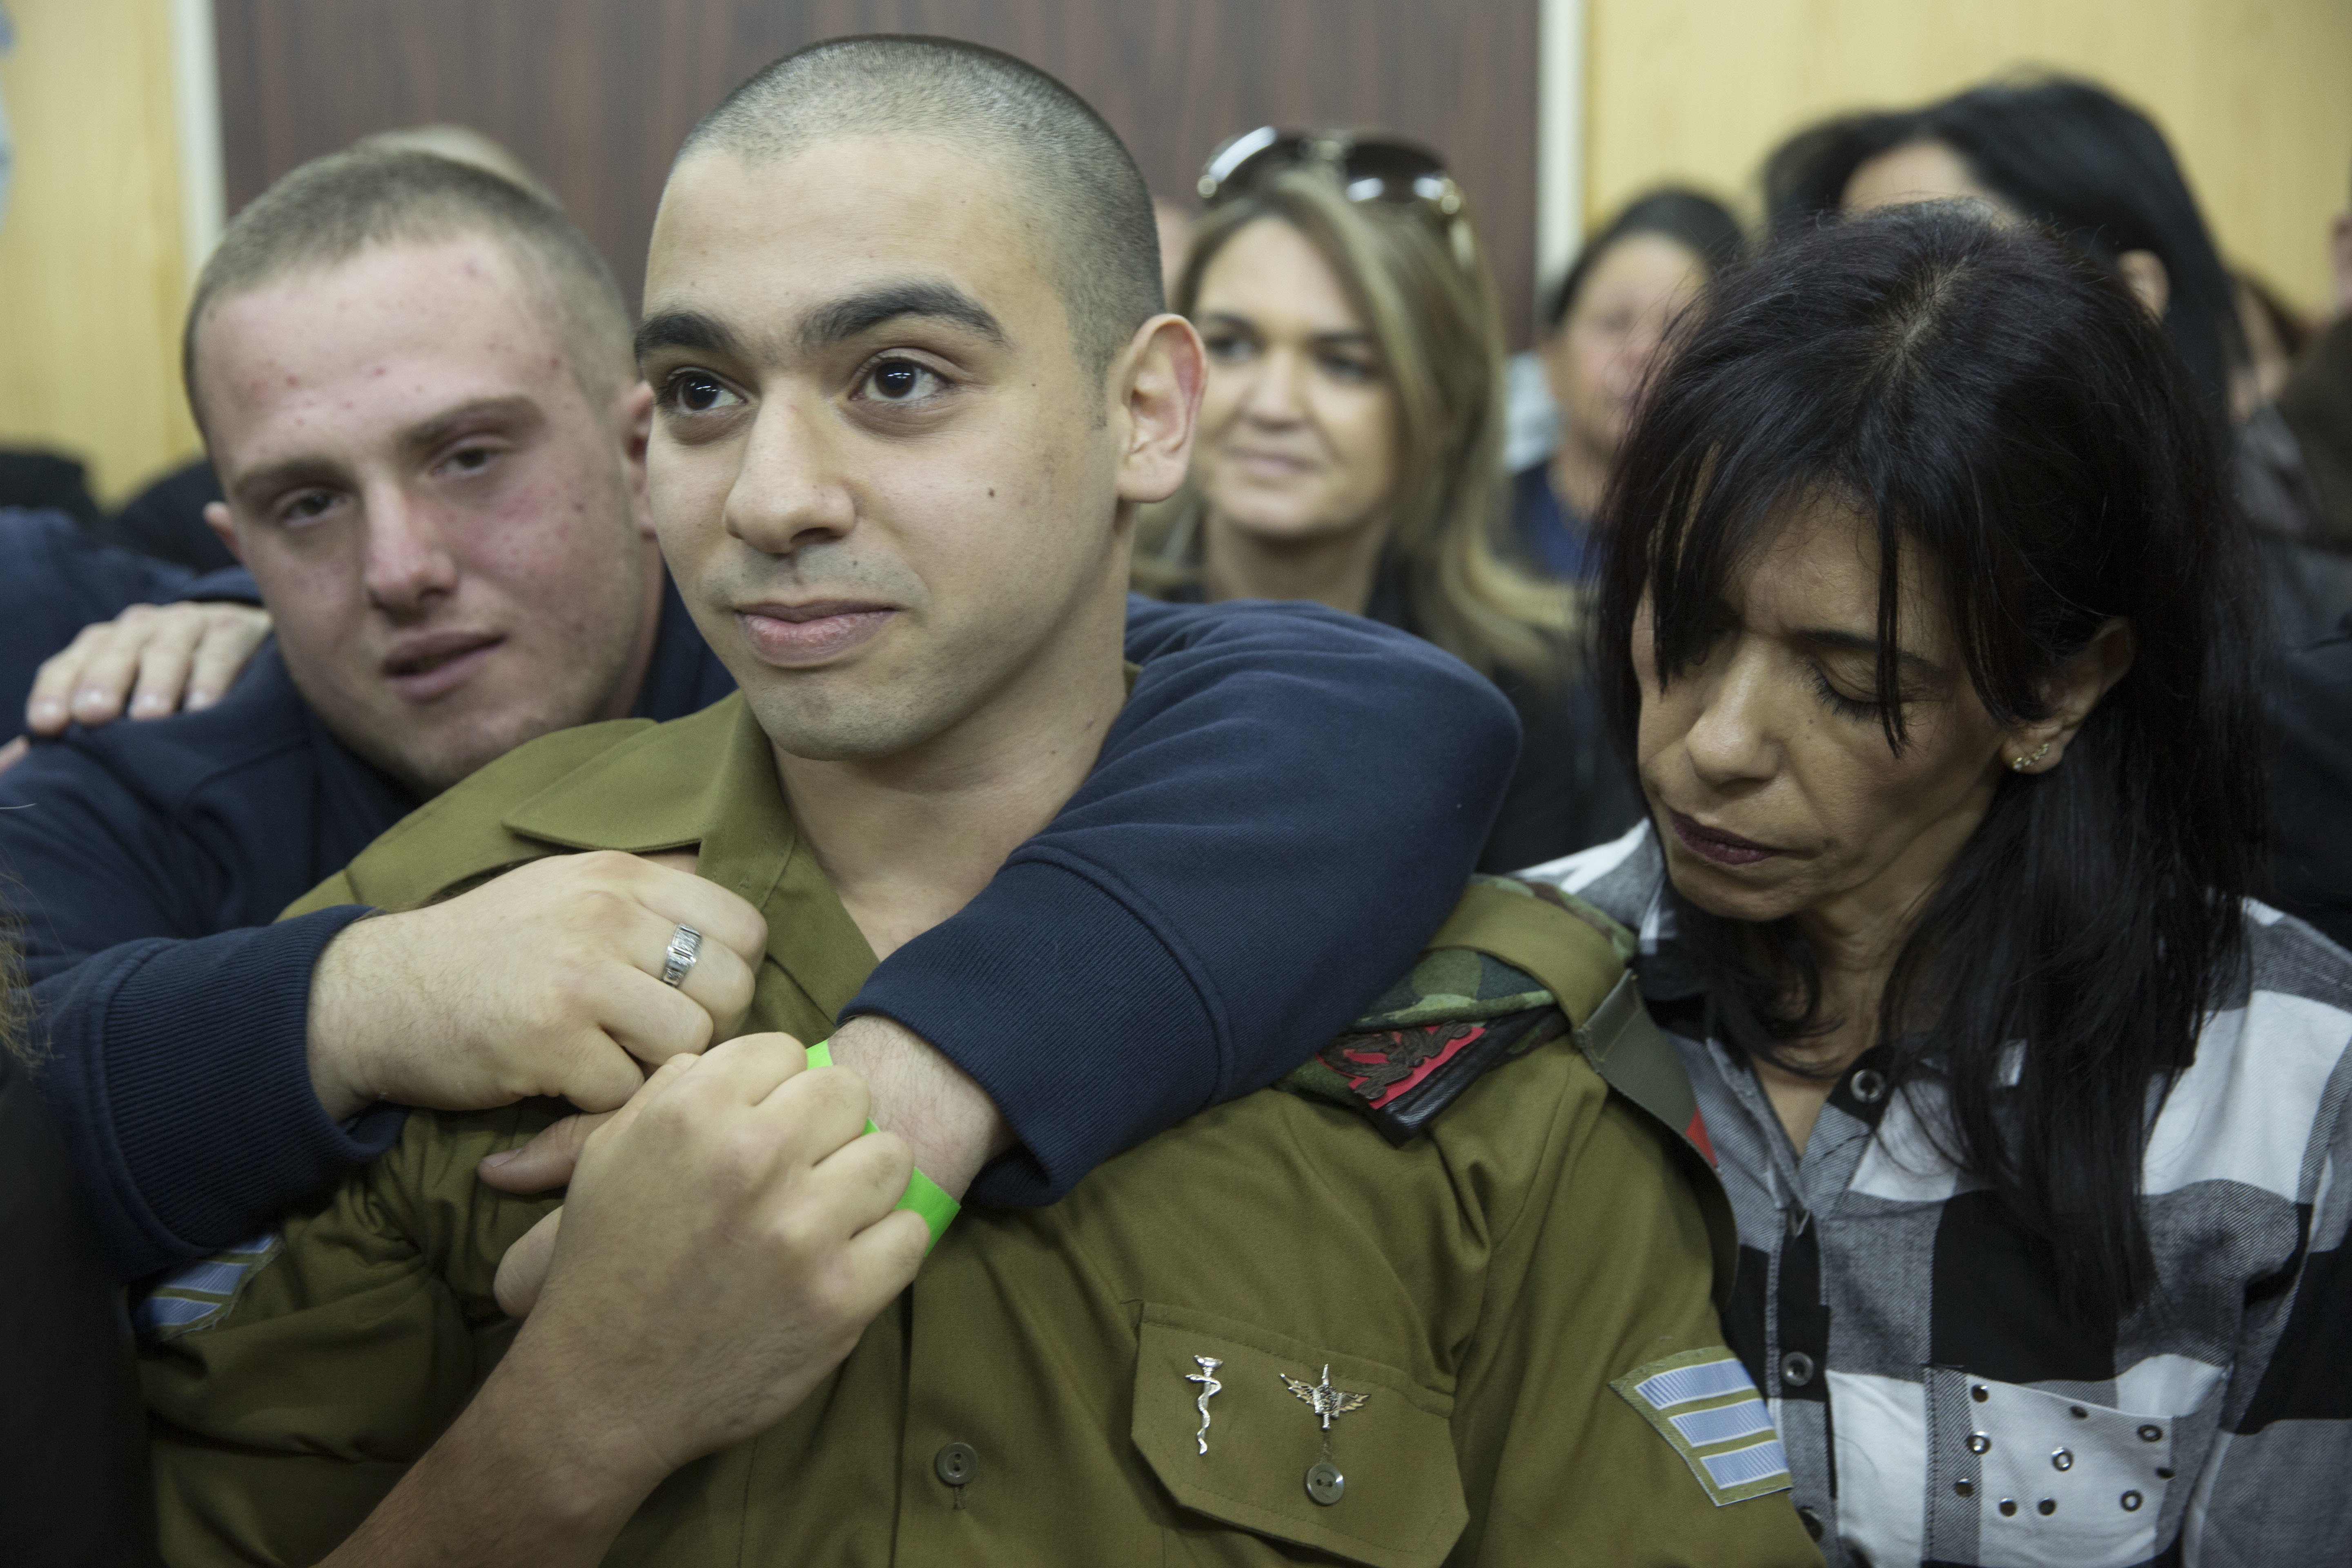 Elor Azaria waits with his parents for the verdict inside the military court in Tel Aviv, Israel, on Jan. 4, 2017.